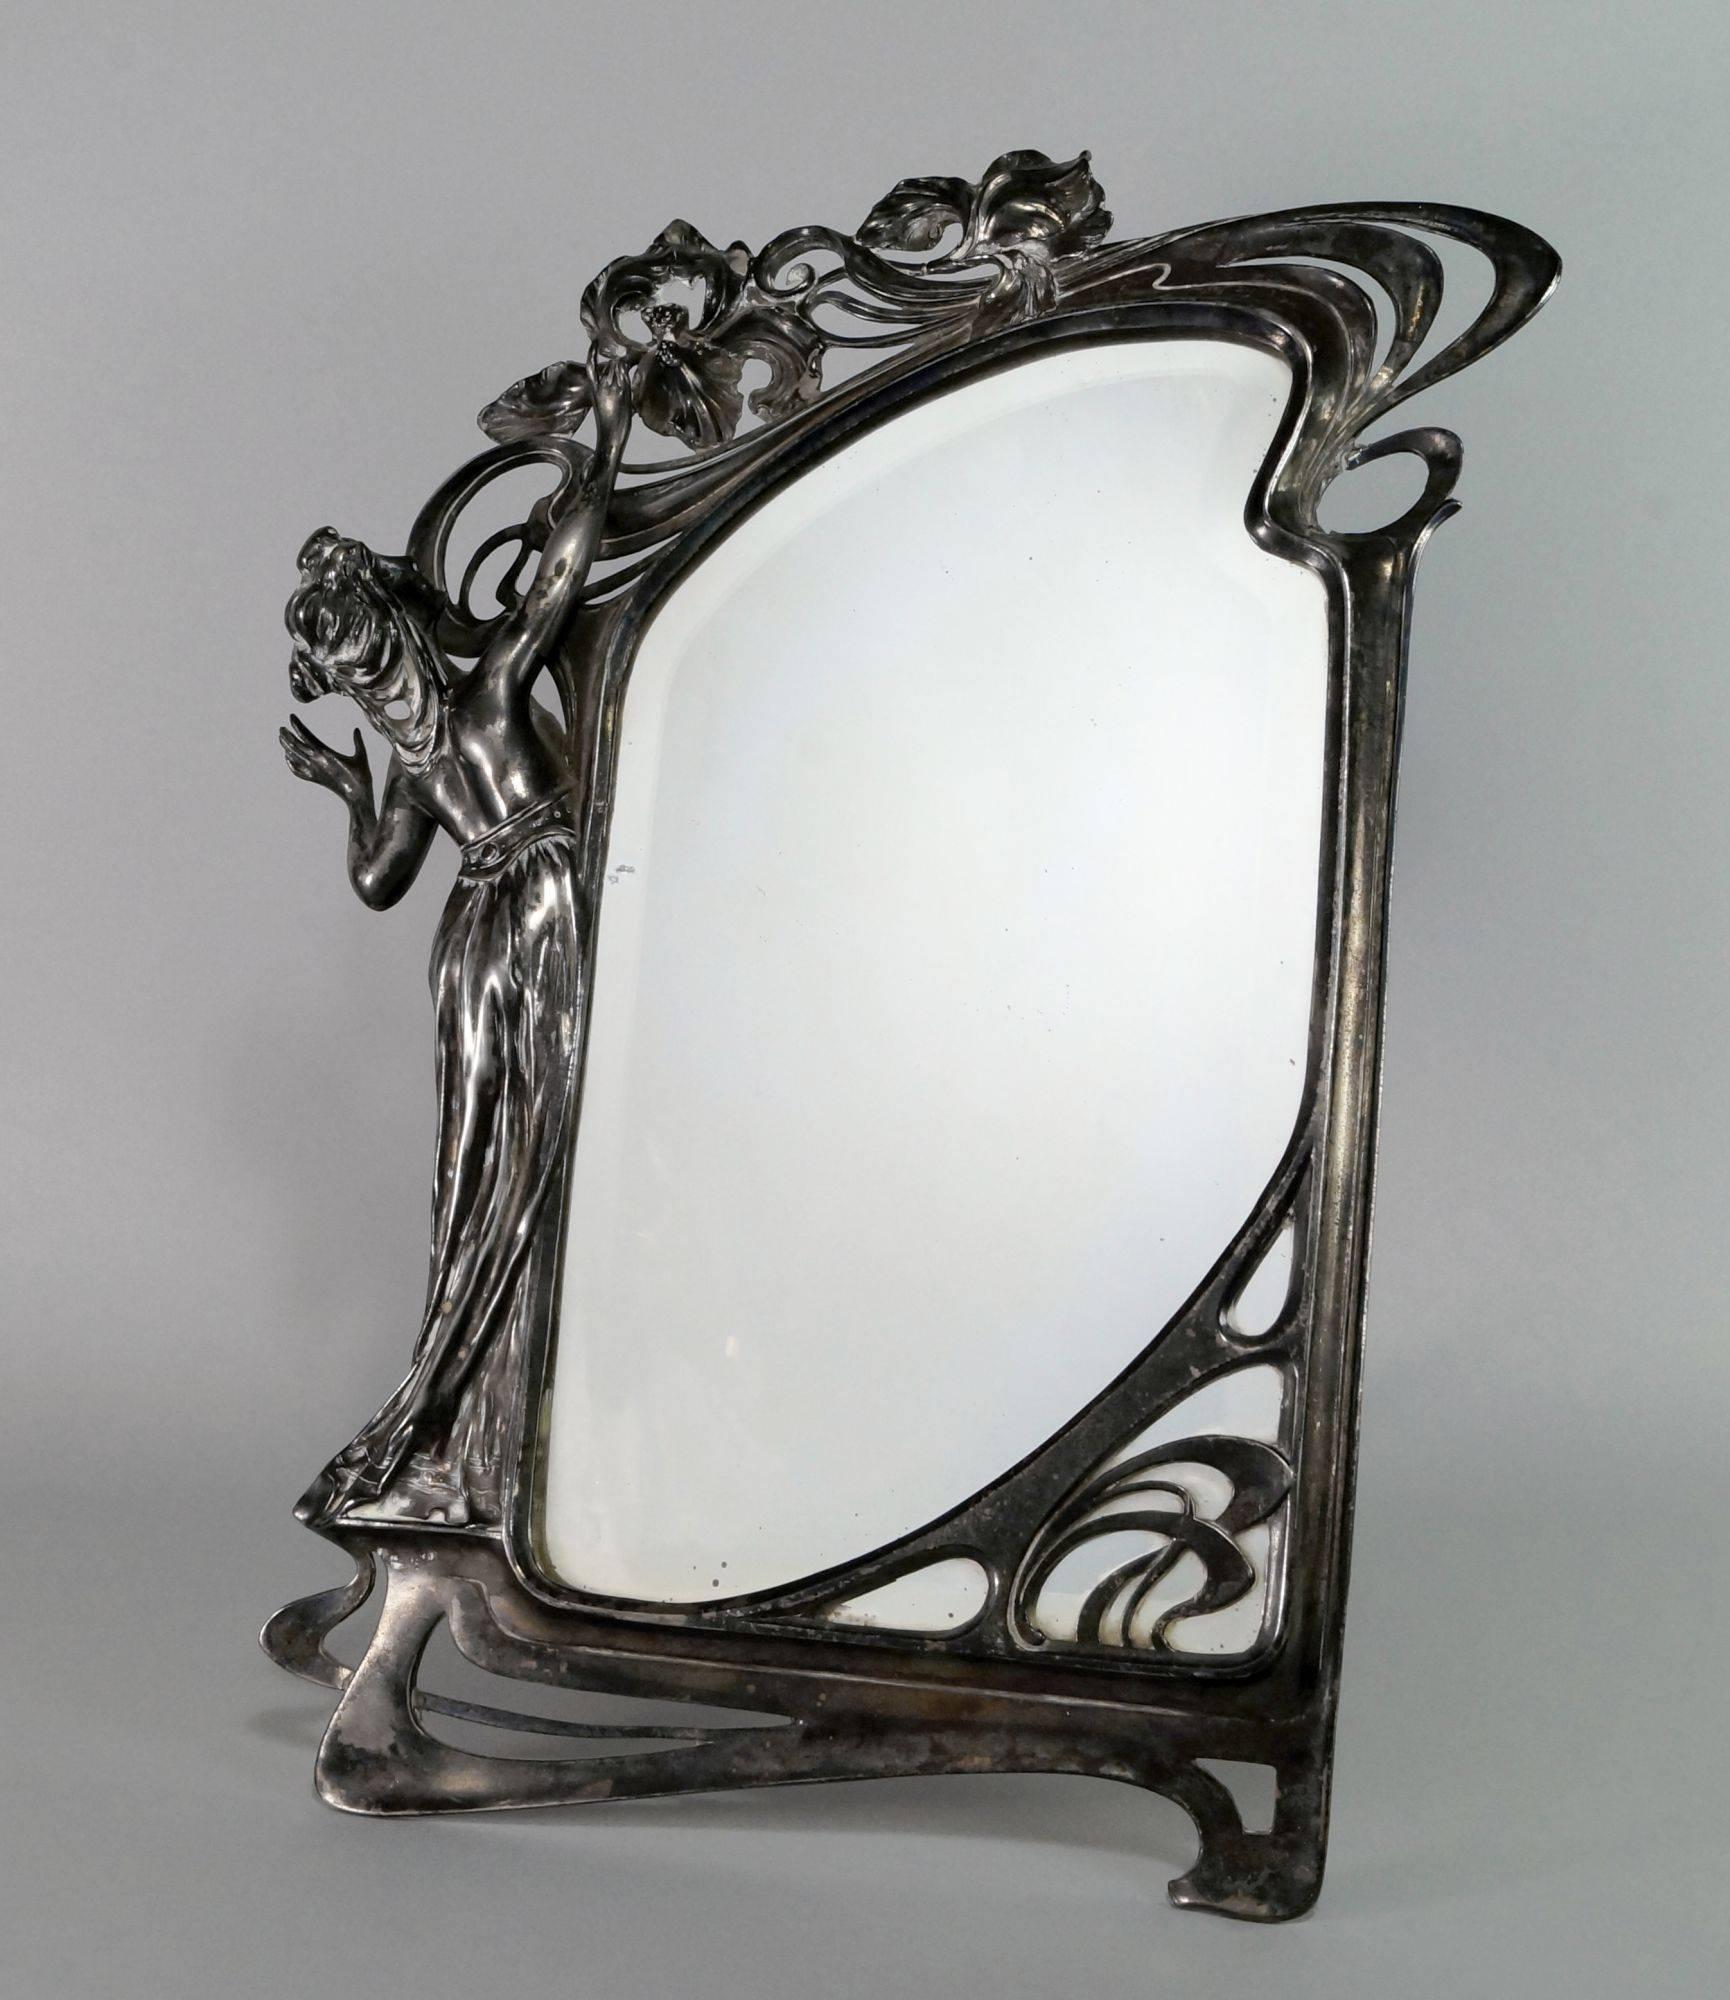 A Jugendstil Pewter Strut Mirror, Decorated With An Art Nouveau Throughout Art Nouveau Mirrors (View 5 of 25)